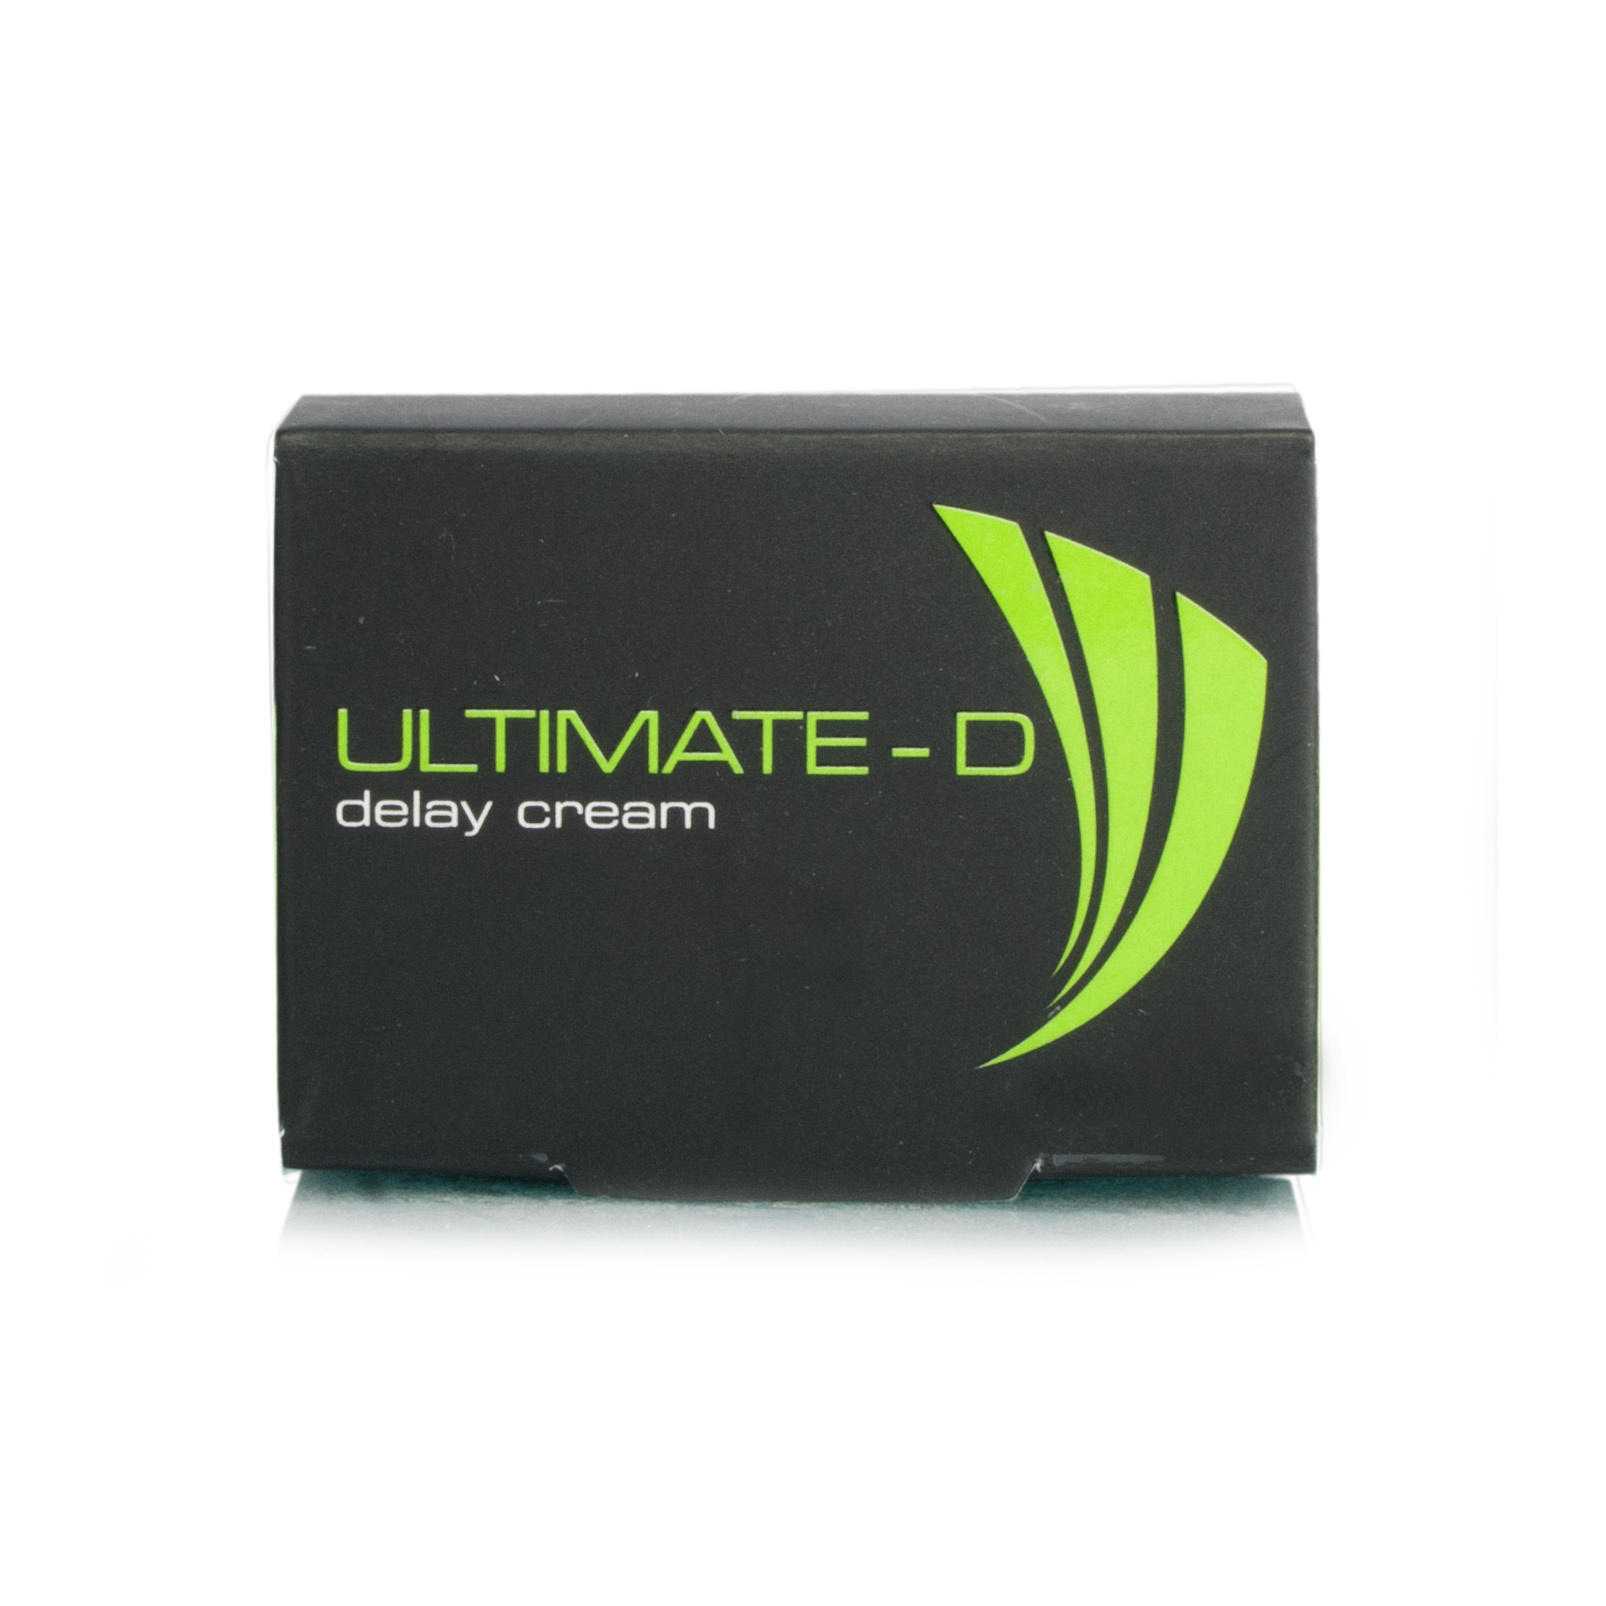 Ultimate Delay Cream